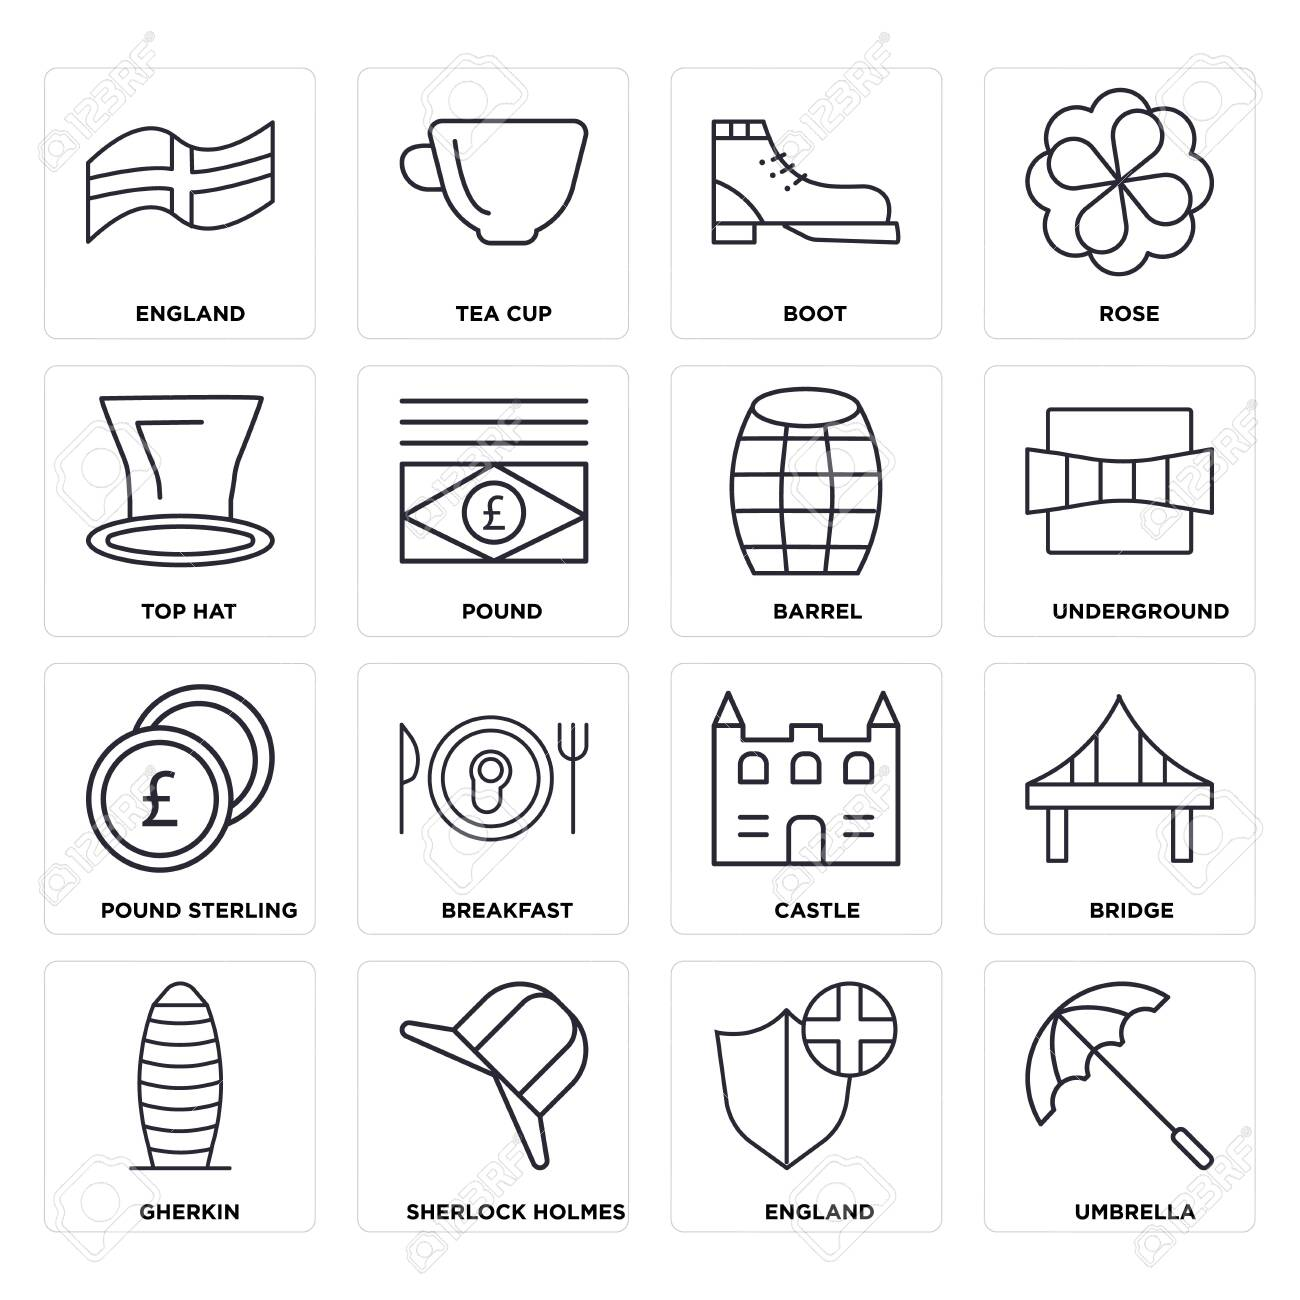 Set Of 16 icons such as Umbrella, England, Gherkin, Bridge, Top hat, Pound sterling, Barrel, web UI editable icon pack, pixel perfect - 130332477